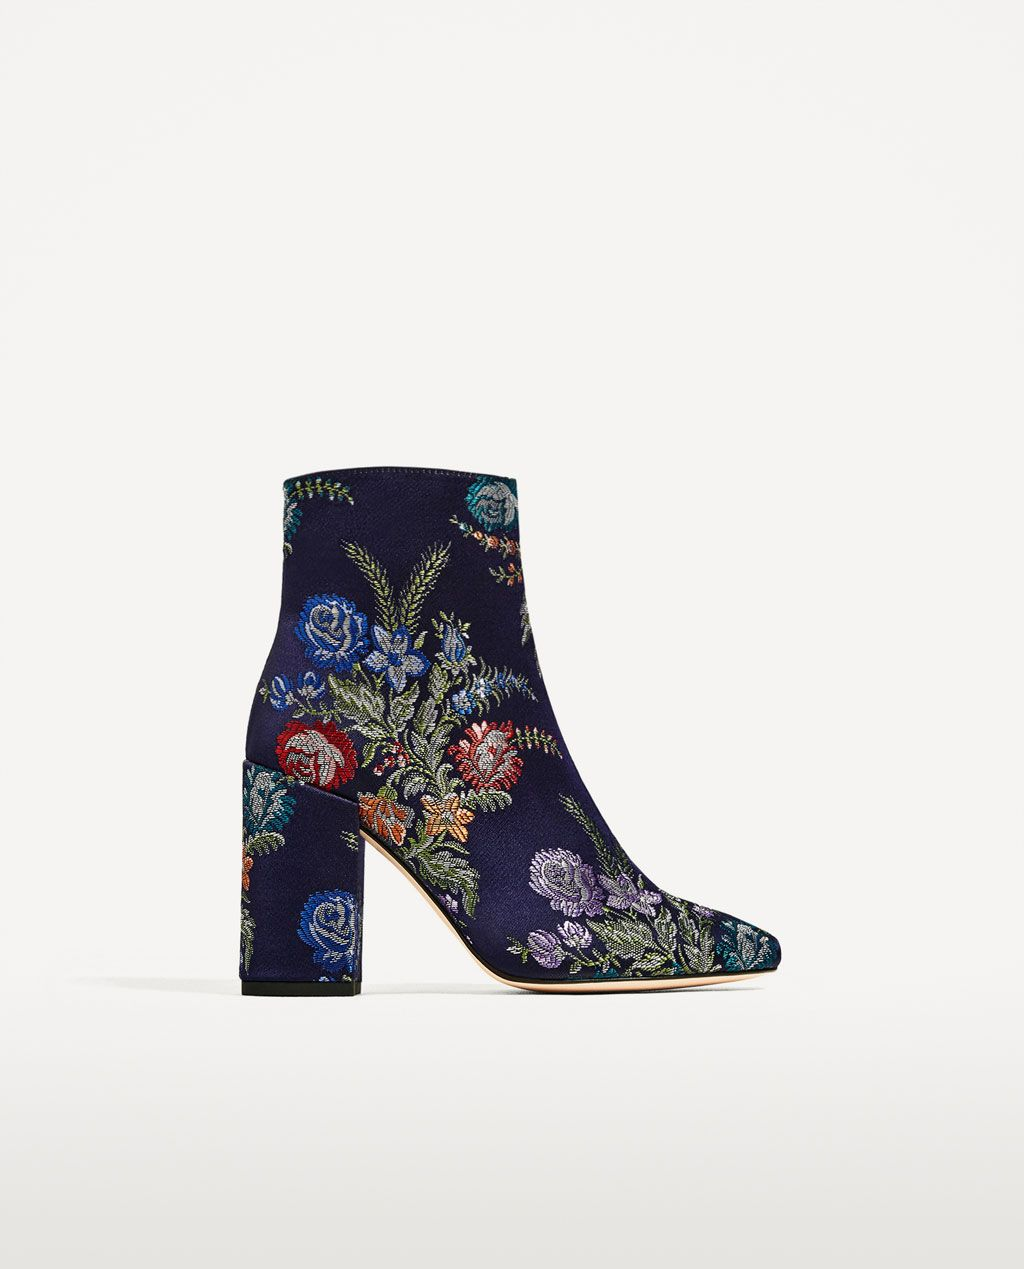 db91bc82e62 Image 2 of EMBROIDERED DETAIL ANKLE BOOTS from Zara